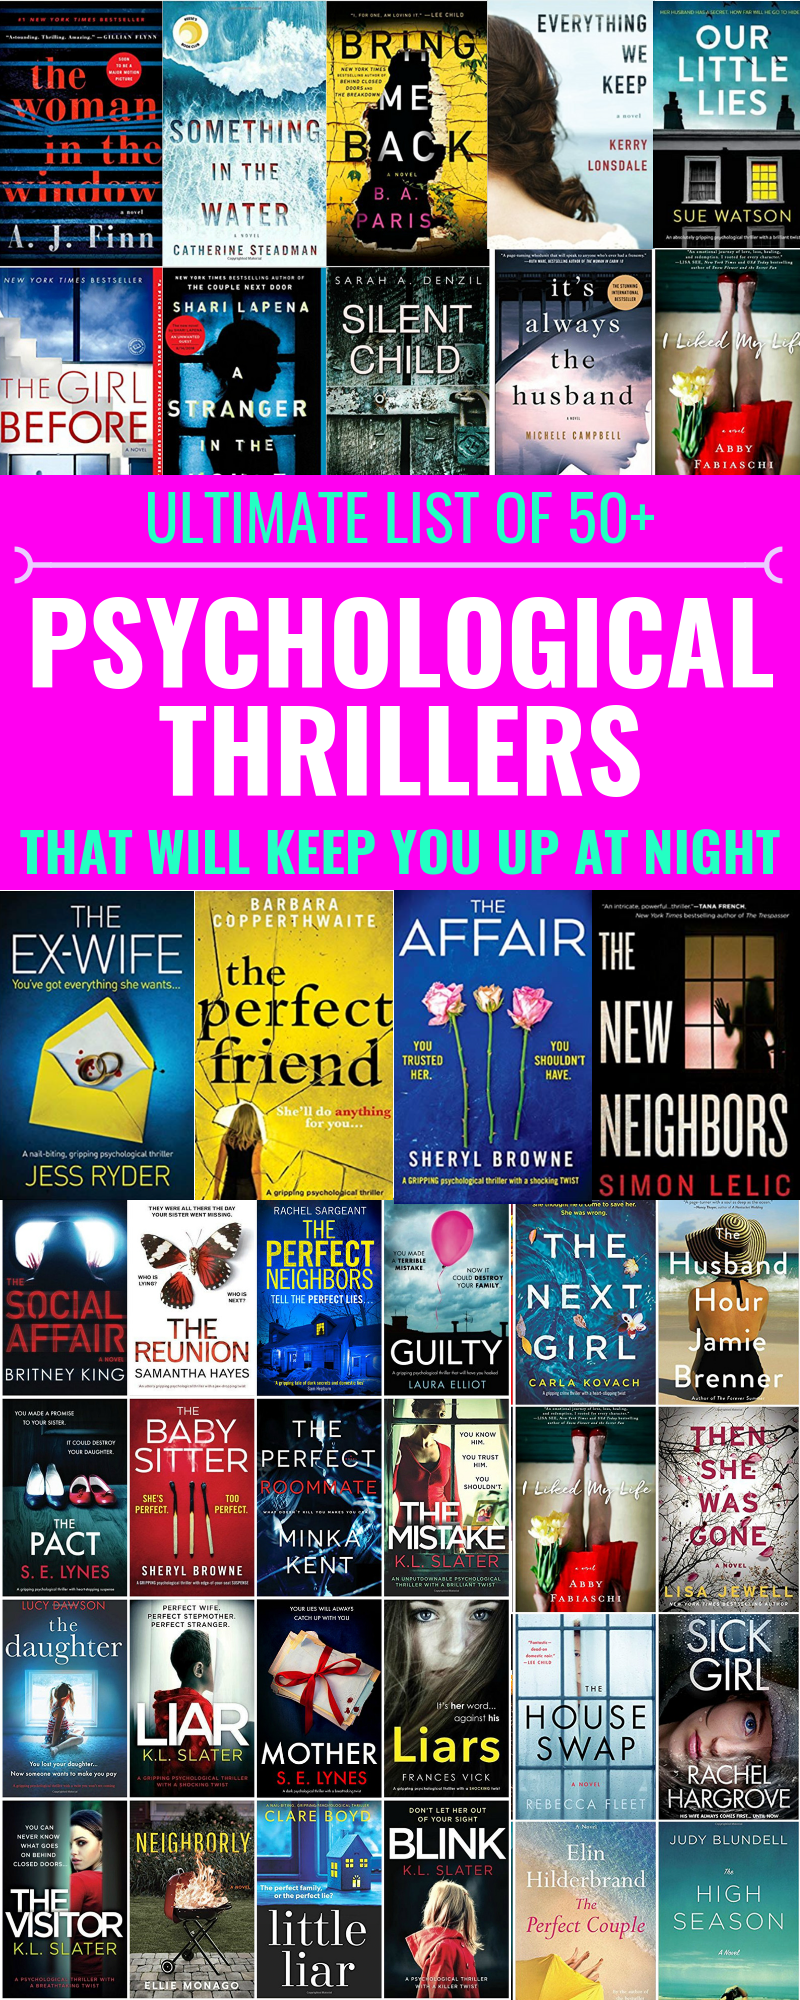 ULTIMATE LIST OF 50+ PSYCHOLOGICAL THRILLERS TO READ |  Thrillers You Need To Read Right Now - Psychological Thrillers - Best New Books - Books Like Gone Girl - Books Like Big Little Lies - Authors Like Liane Moriarty - Gillian Flynn - Thriller Books - Psychological Thriller Books To Read - Communikait by Kait Hanson #psychologicalthrillers #thrillers #novels #books #bookstoread